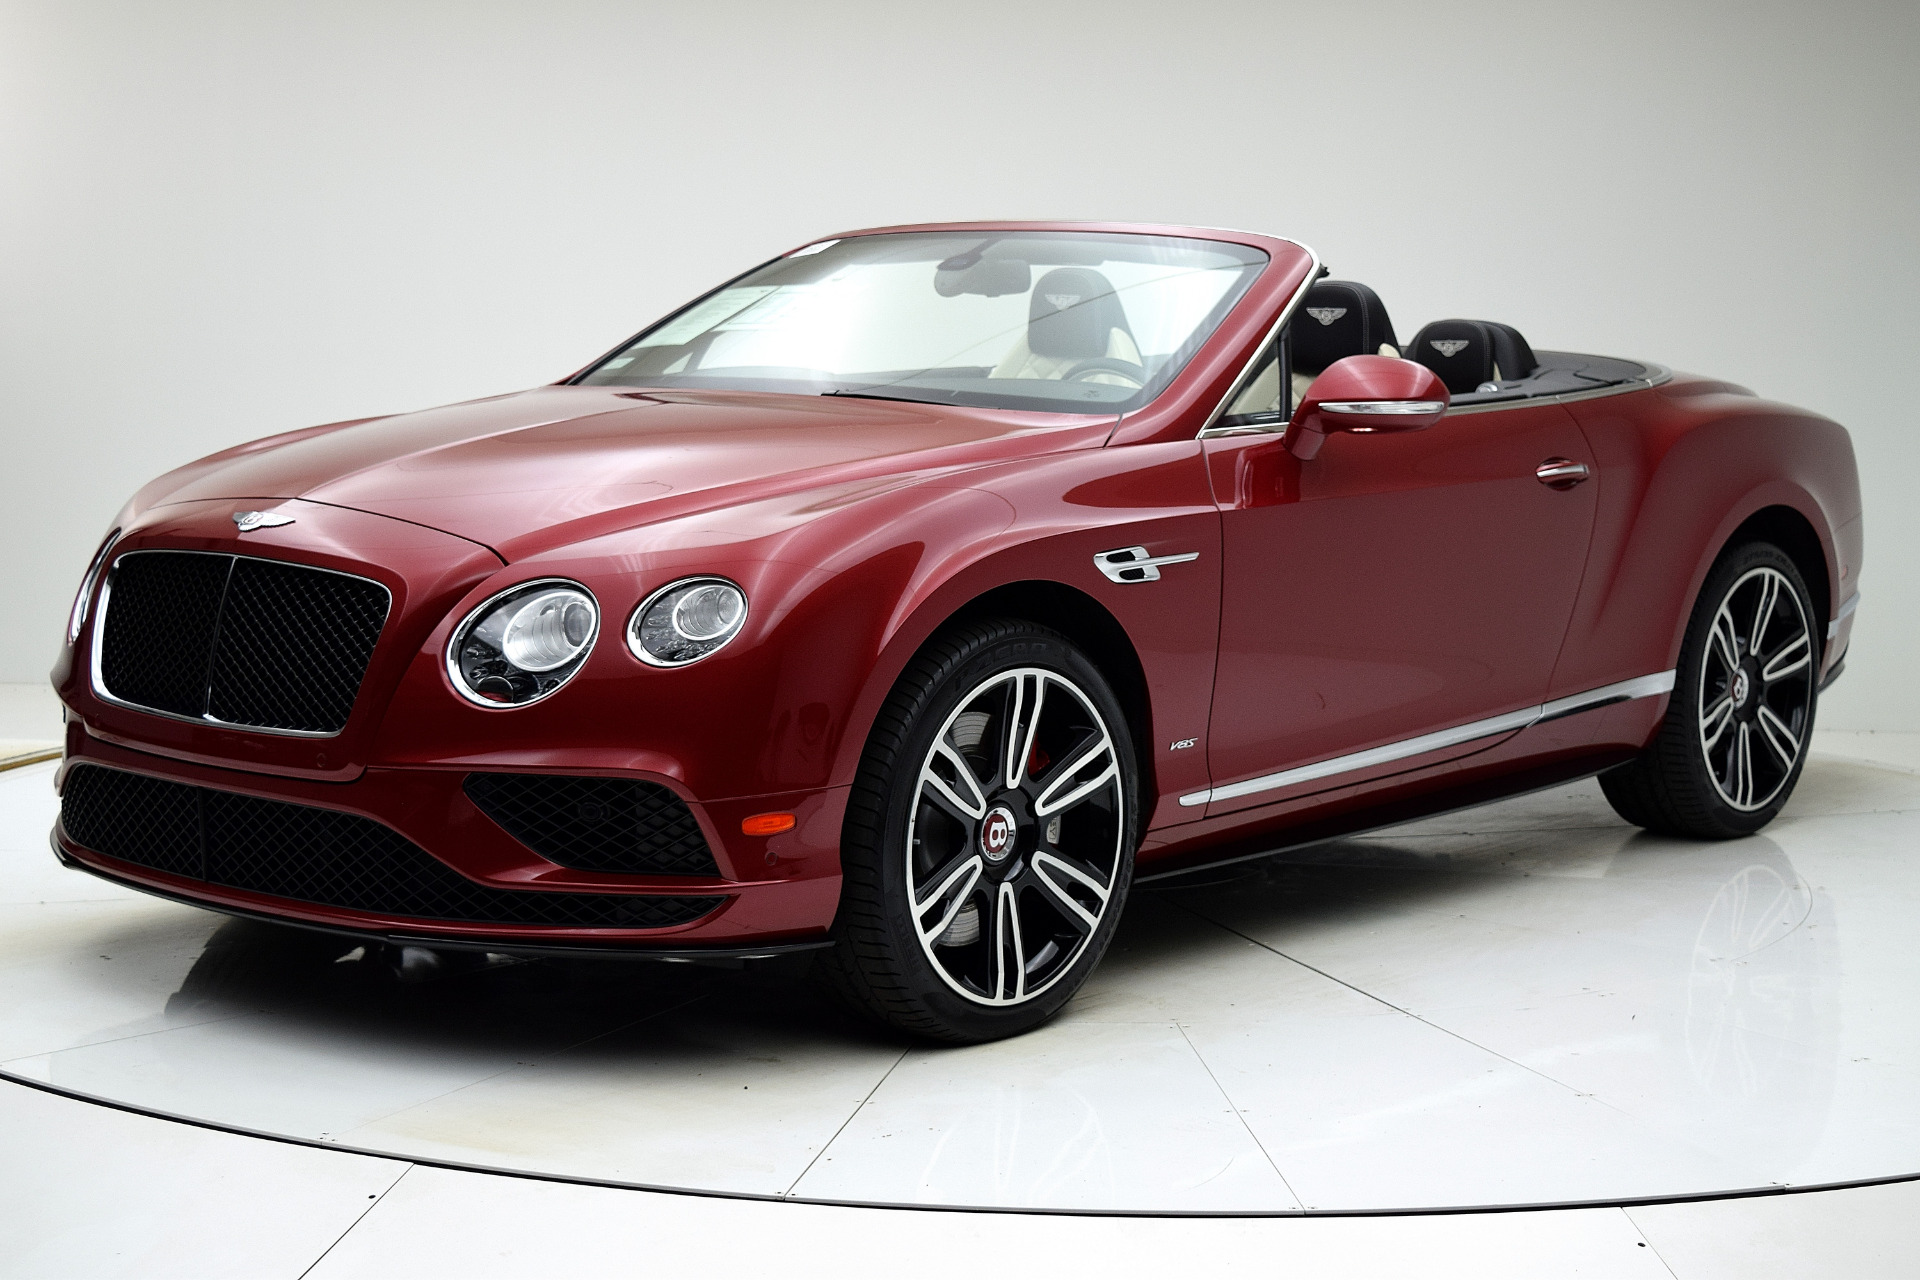 Used 2016 Bentley Continental GT V8 S Convertible for sale $145,880 at F.C. Kerbeck Aston Martin in Palmyra NJ 08065 2